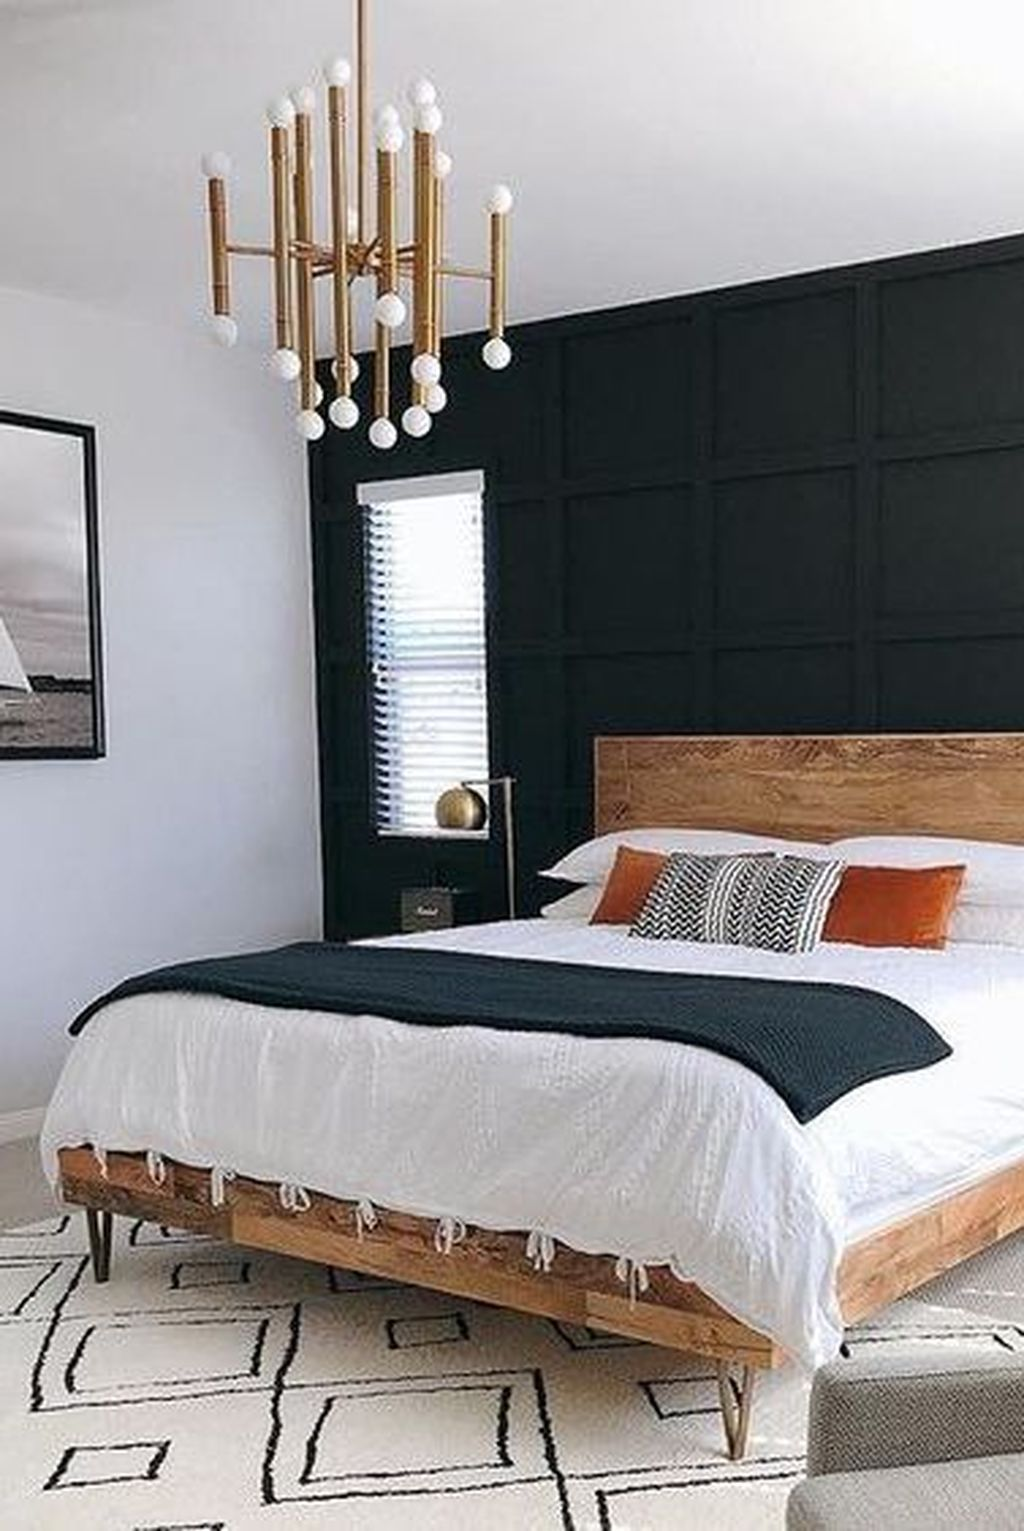 41 Hottest Master Bedroom Design Ideas That Suitable For Your Home